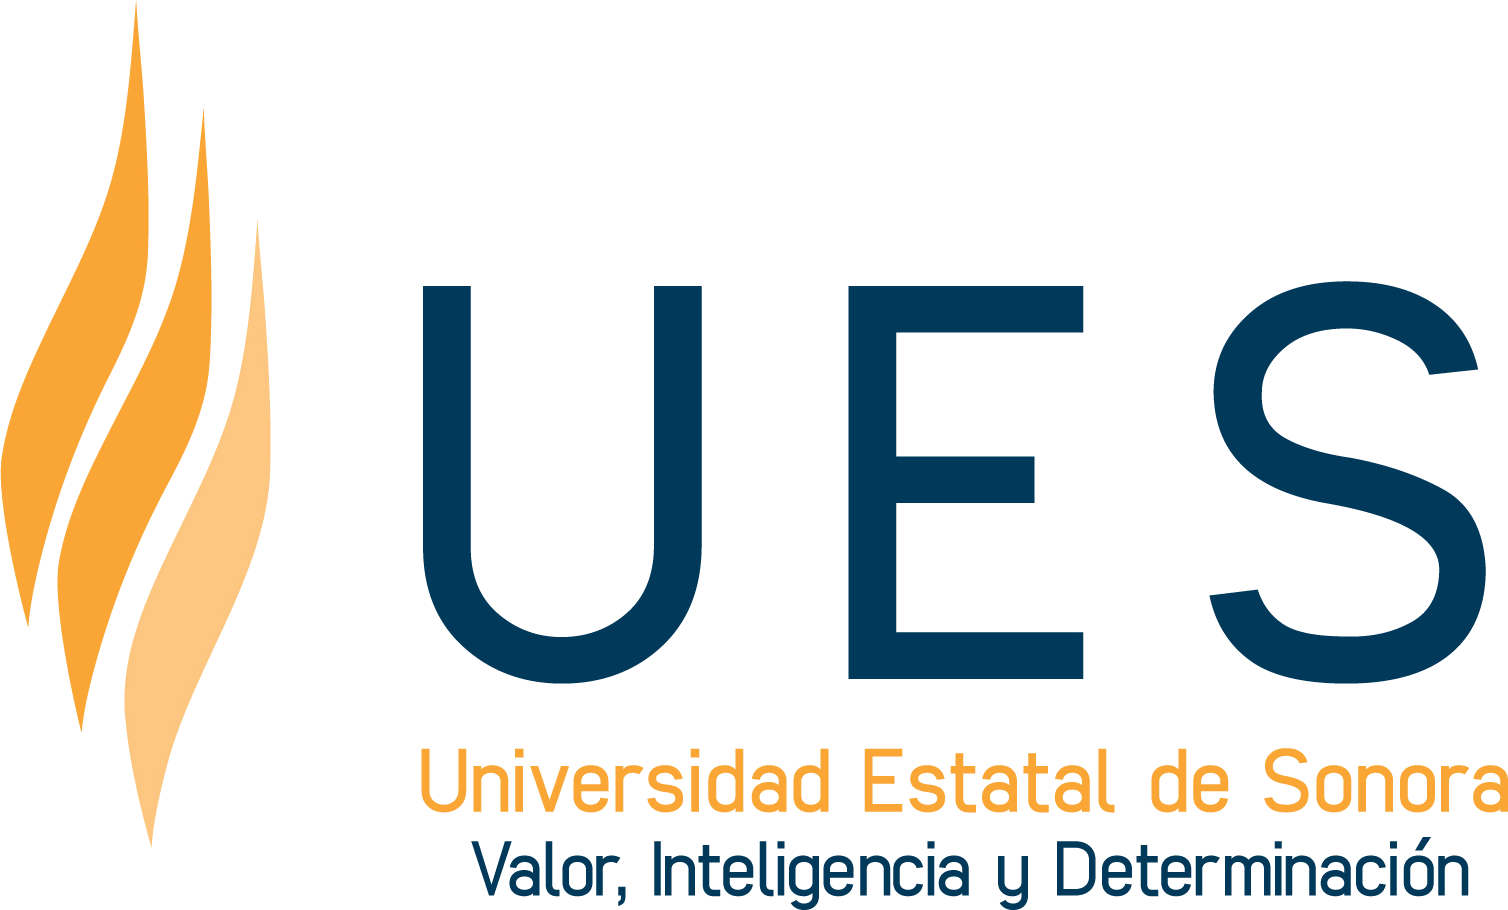 UES_-_UNIVERSIDAD_ESTATAL_DE_SONORA